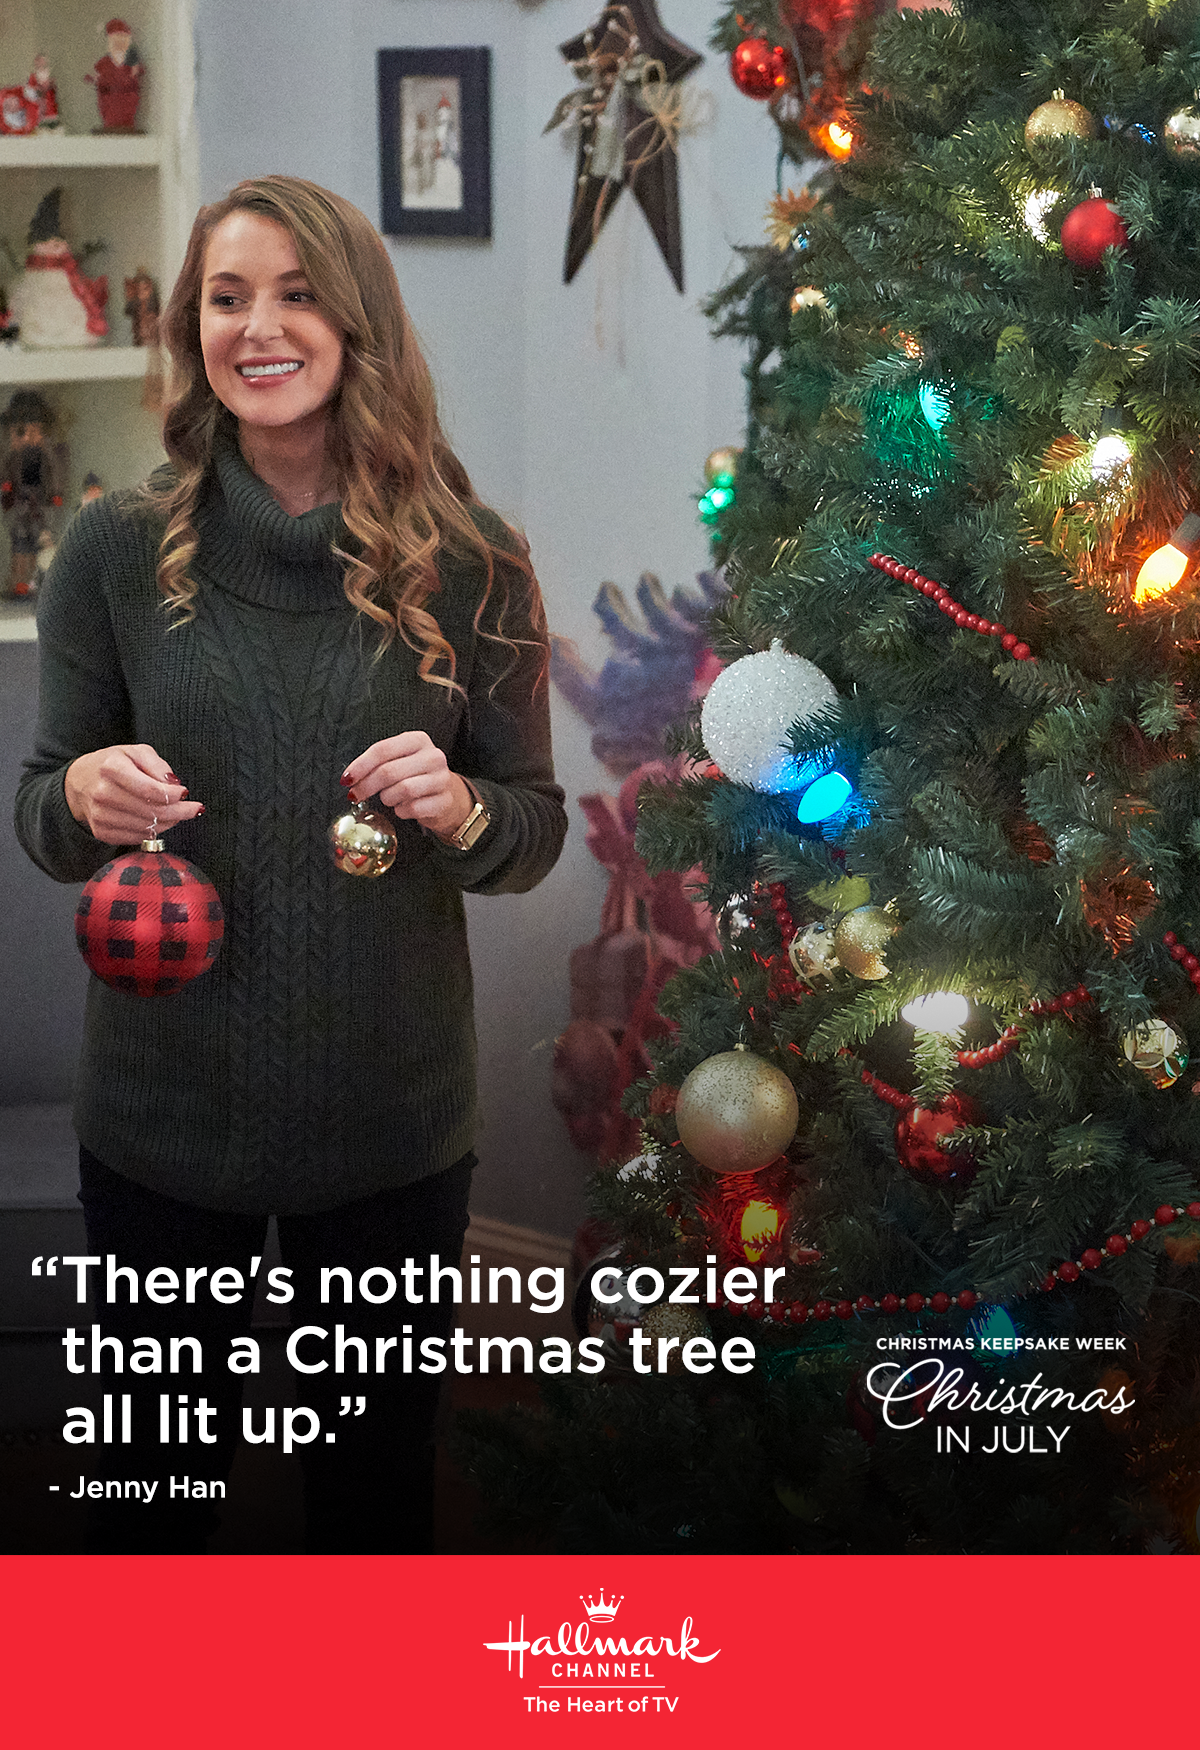 Christmas In July Hallmark Channel 2019.Celebrate Christmas In July With Your Favorite Holiday